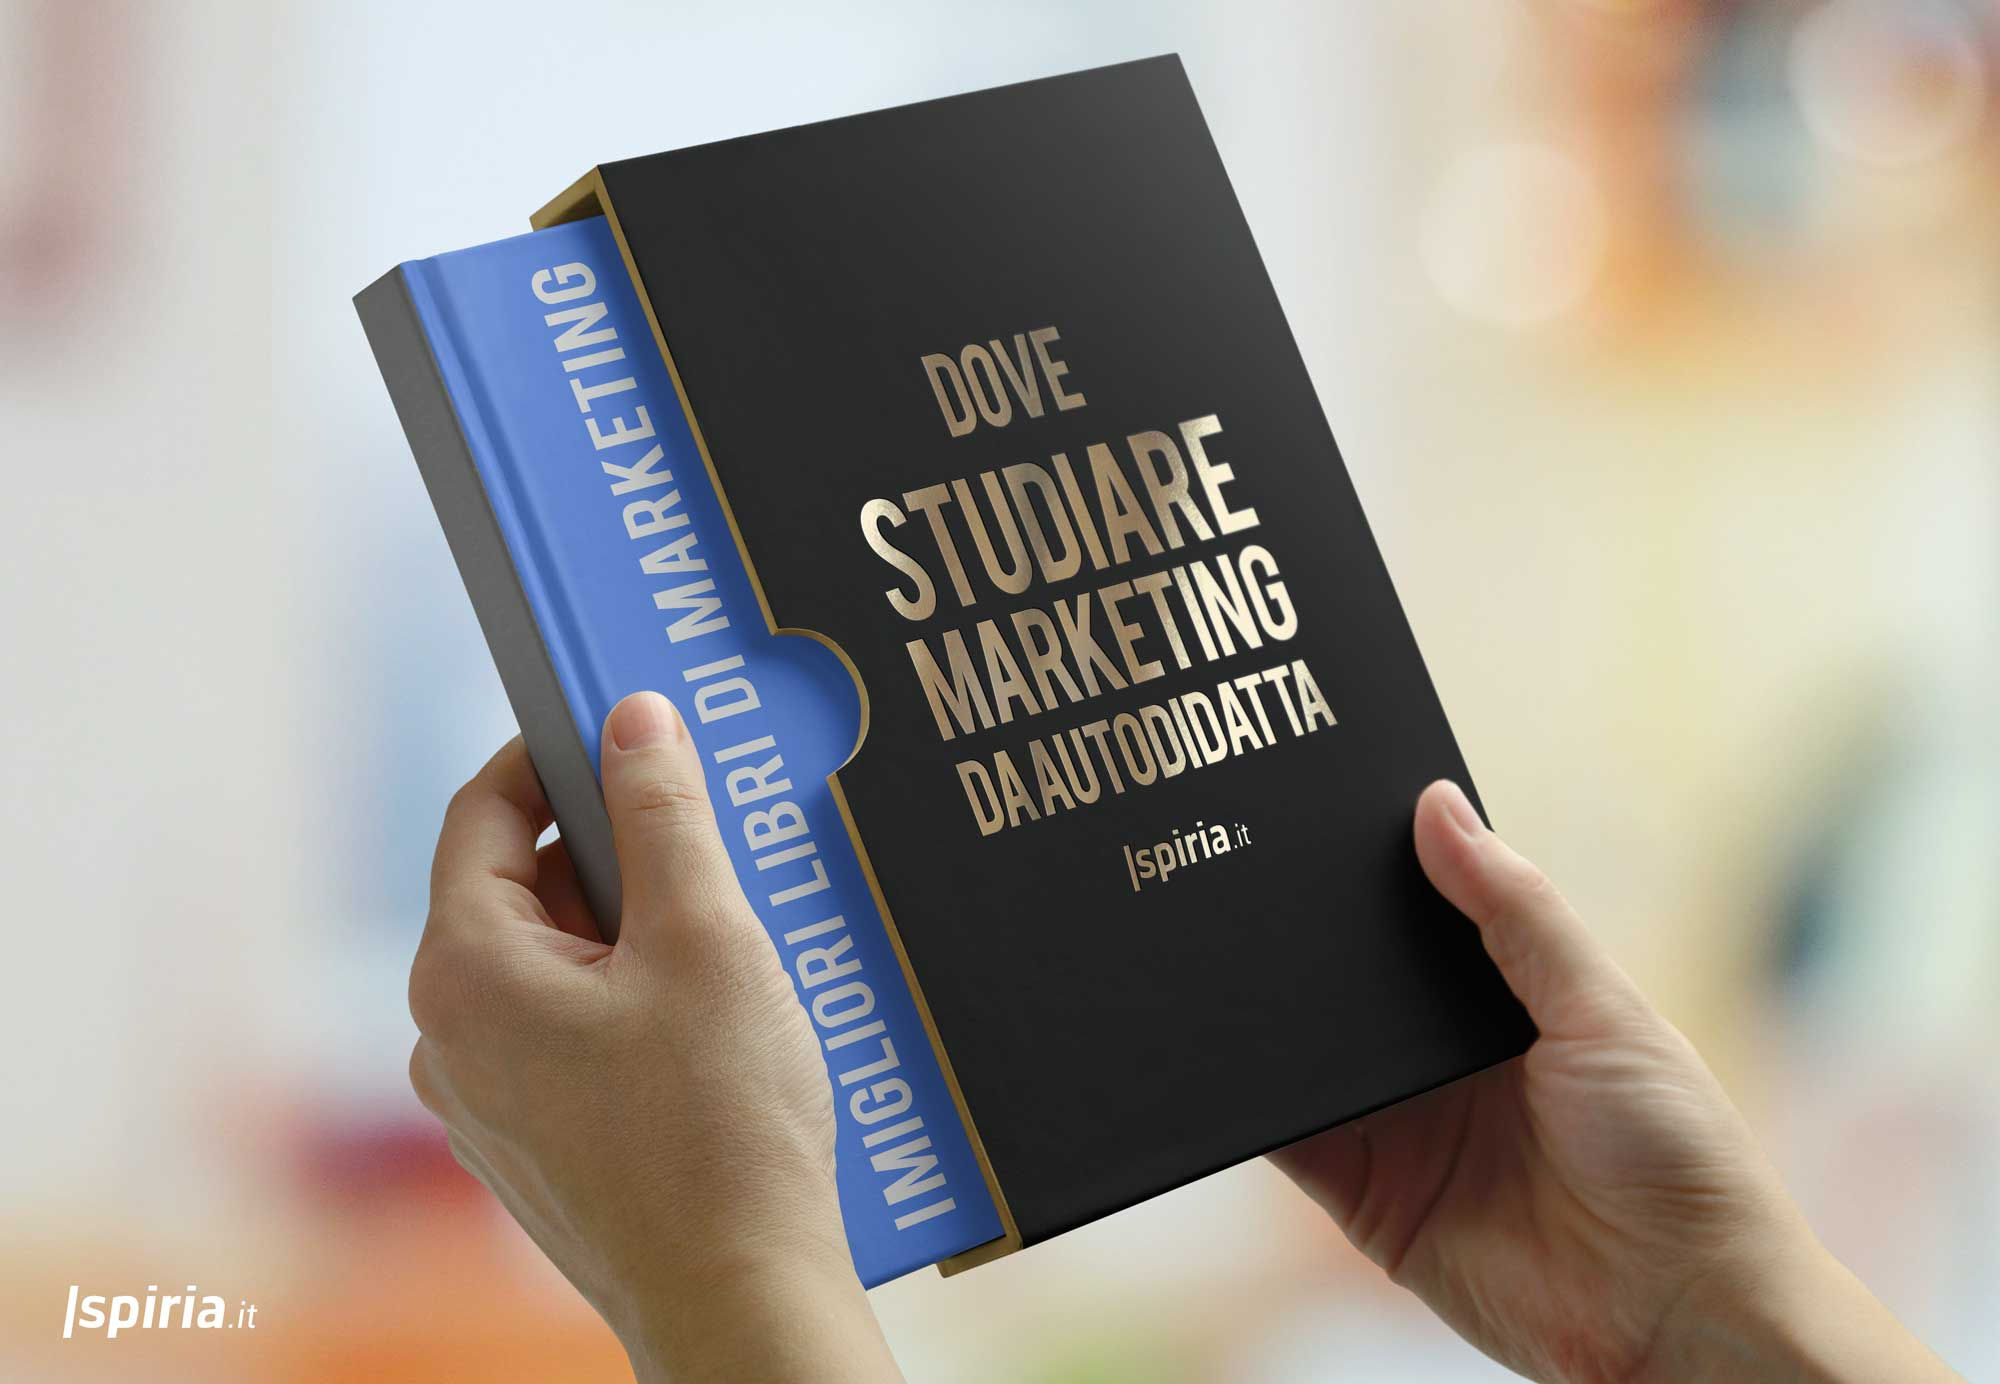 dove studiare marketing da autodidatta